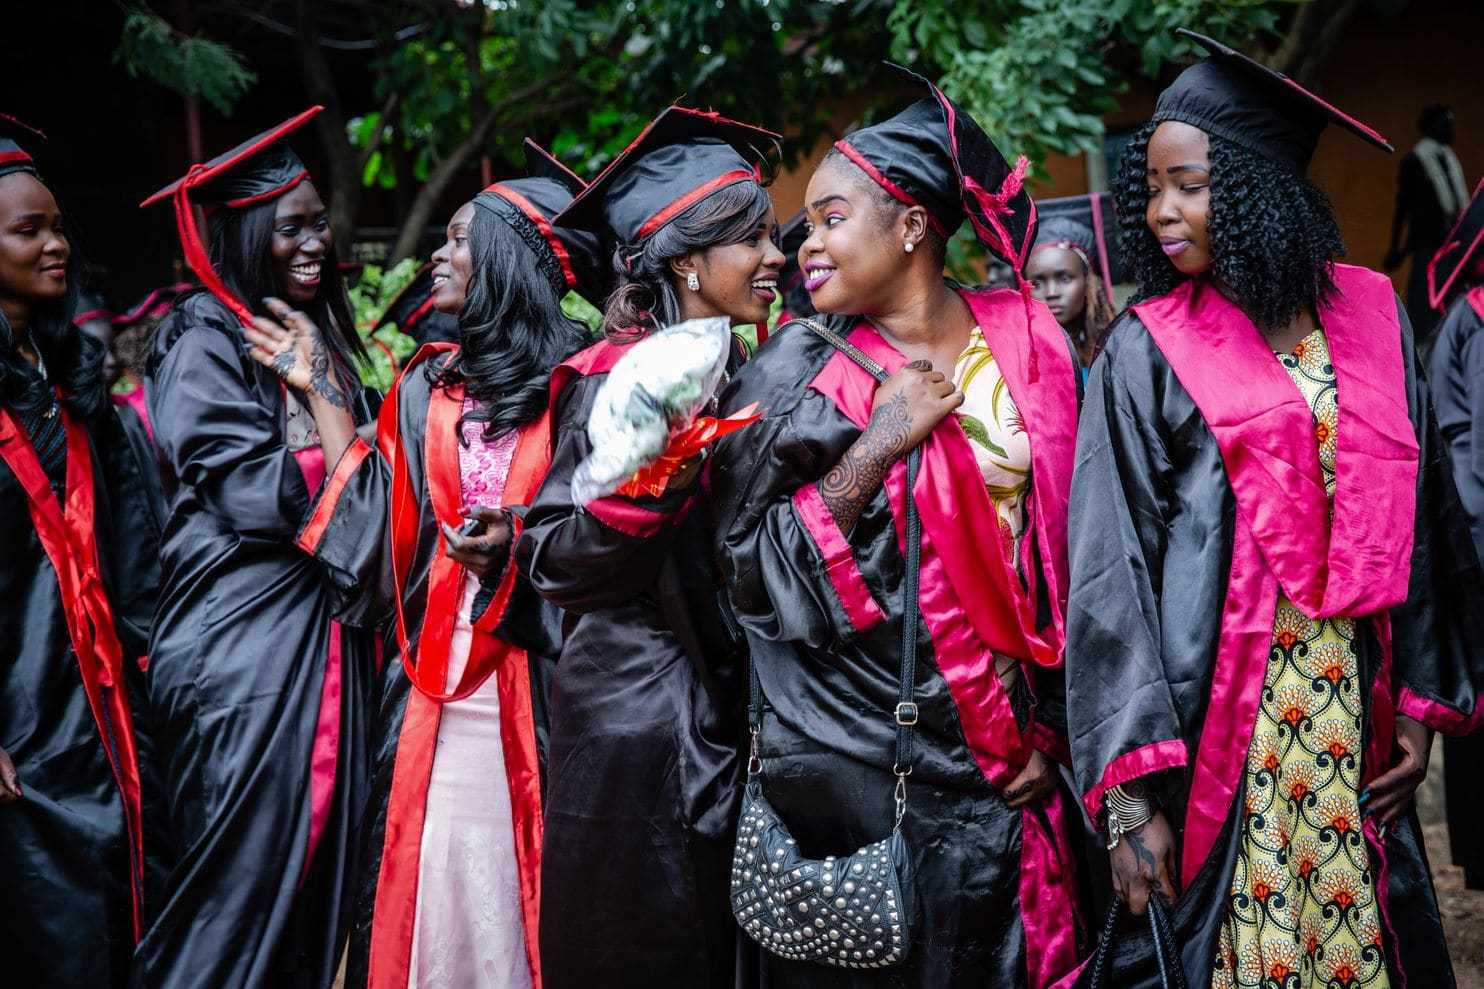 A group of young Sudanese women in black and red graduation regalia